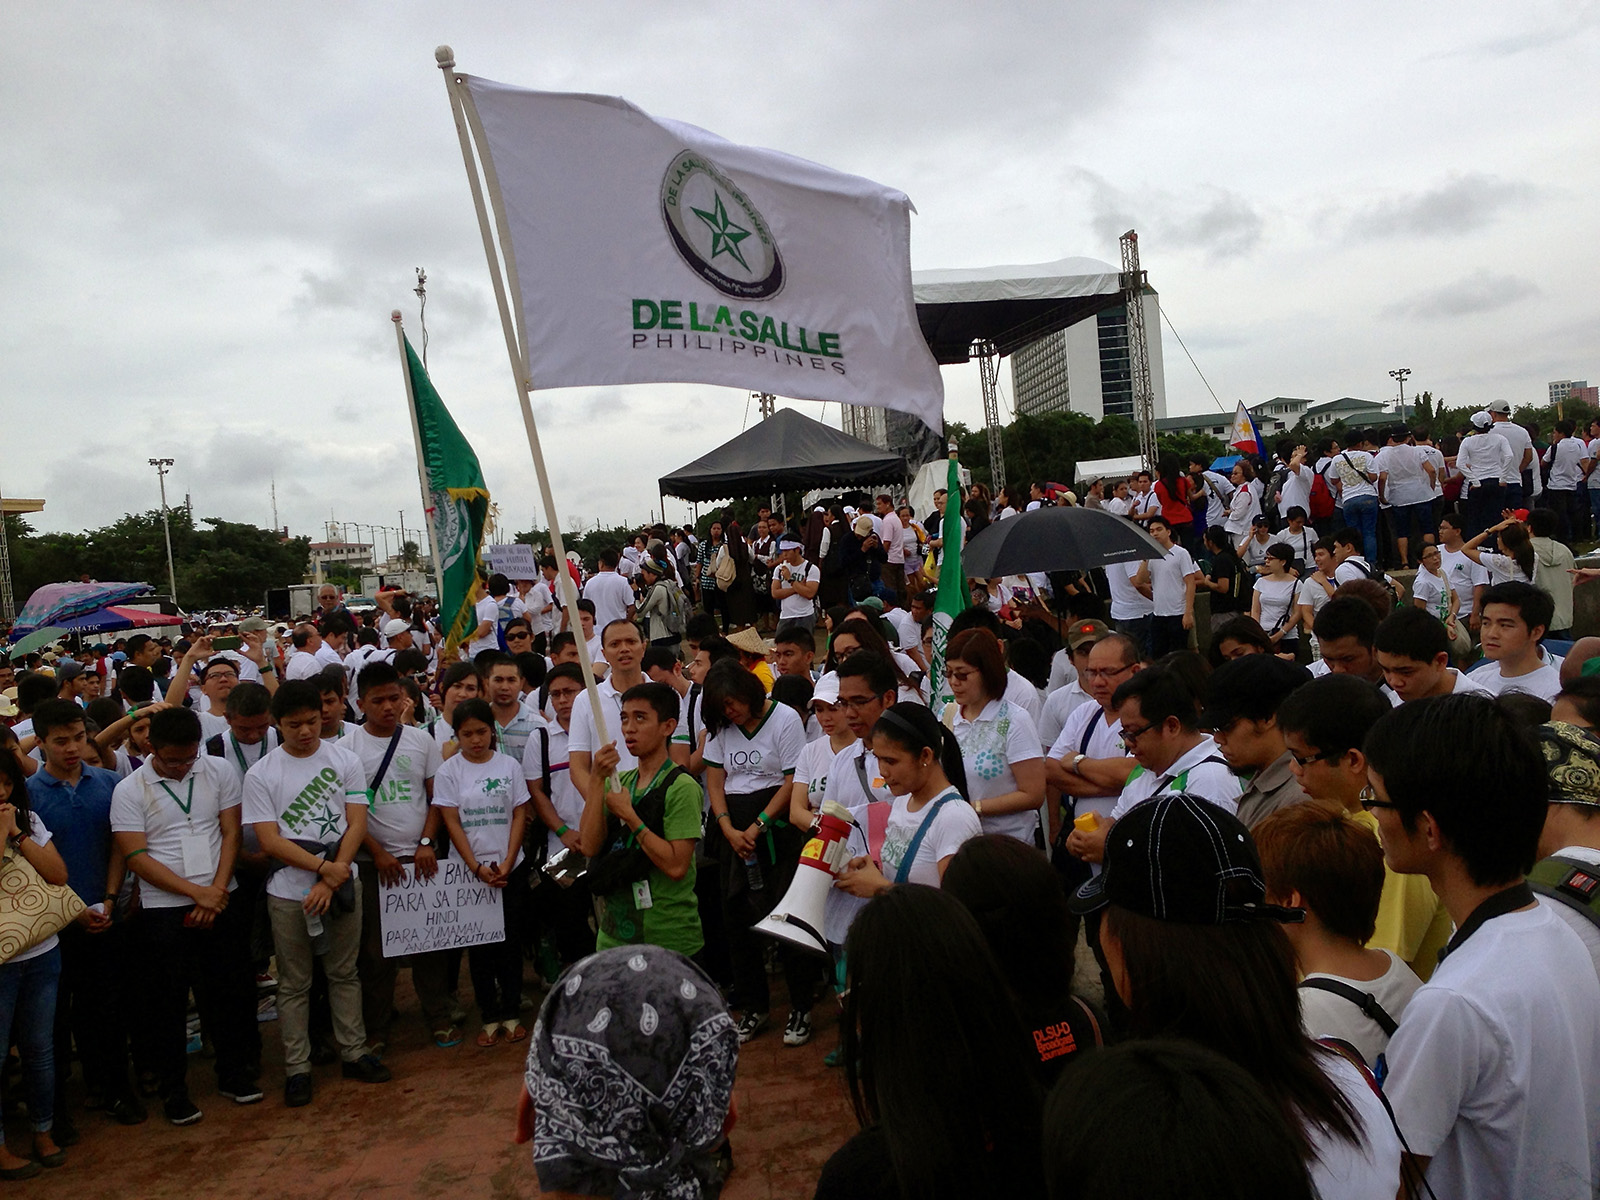 Lasallians from all over Luzon gathered in Rizal Park in unity with other Filipinos to express disgust towards the blatant misuse and abuse of public funds.